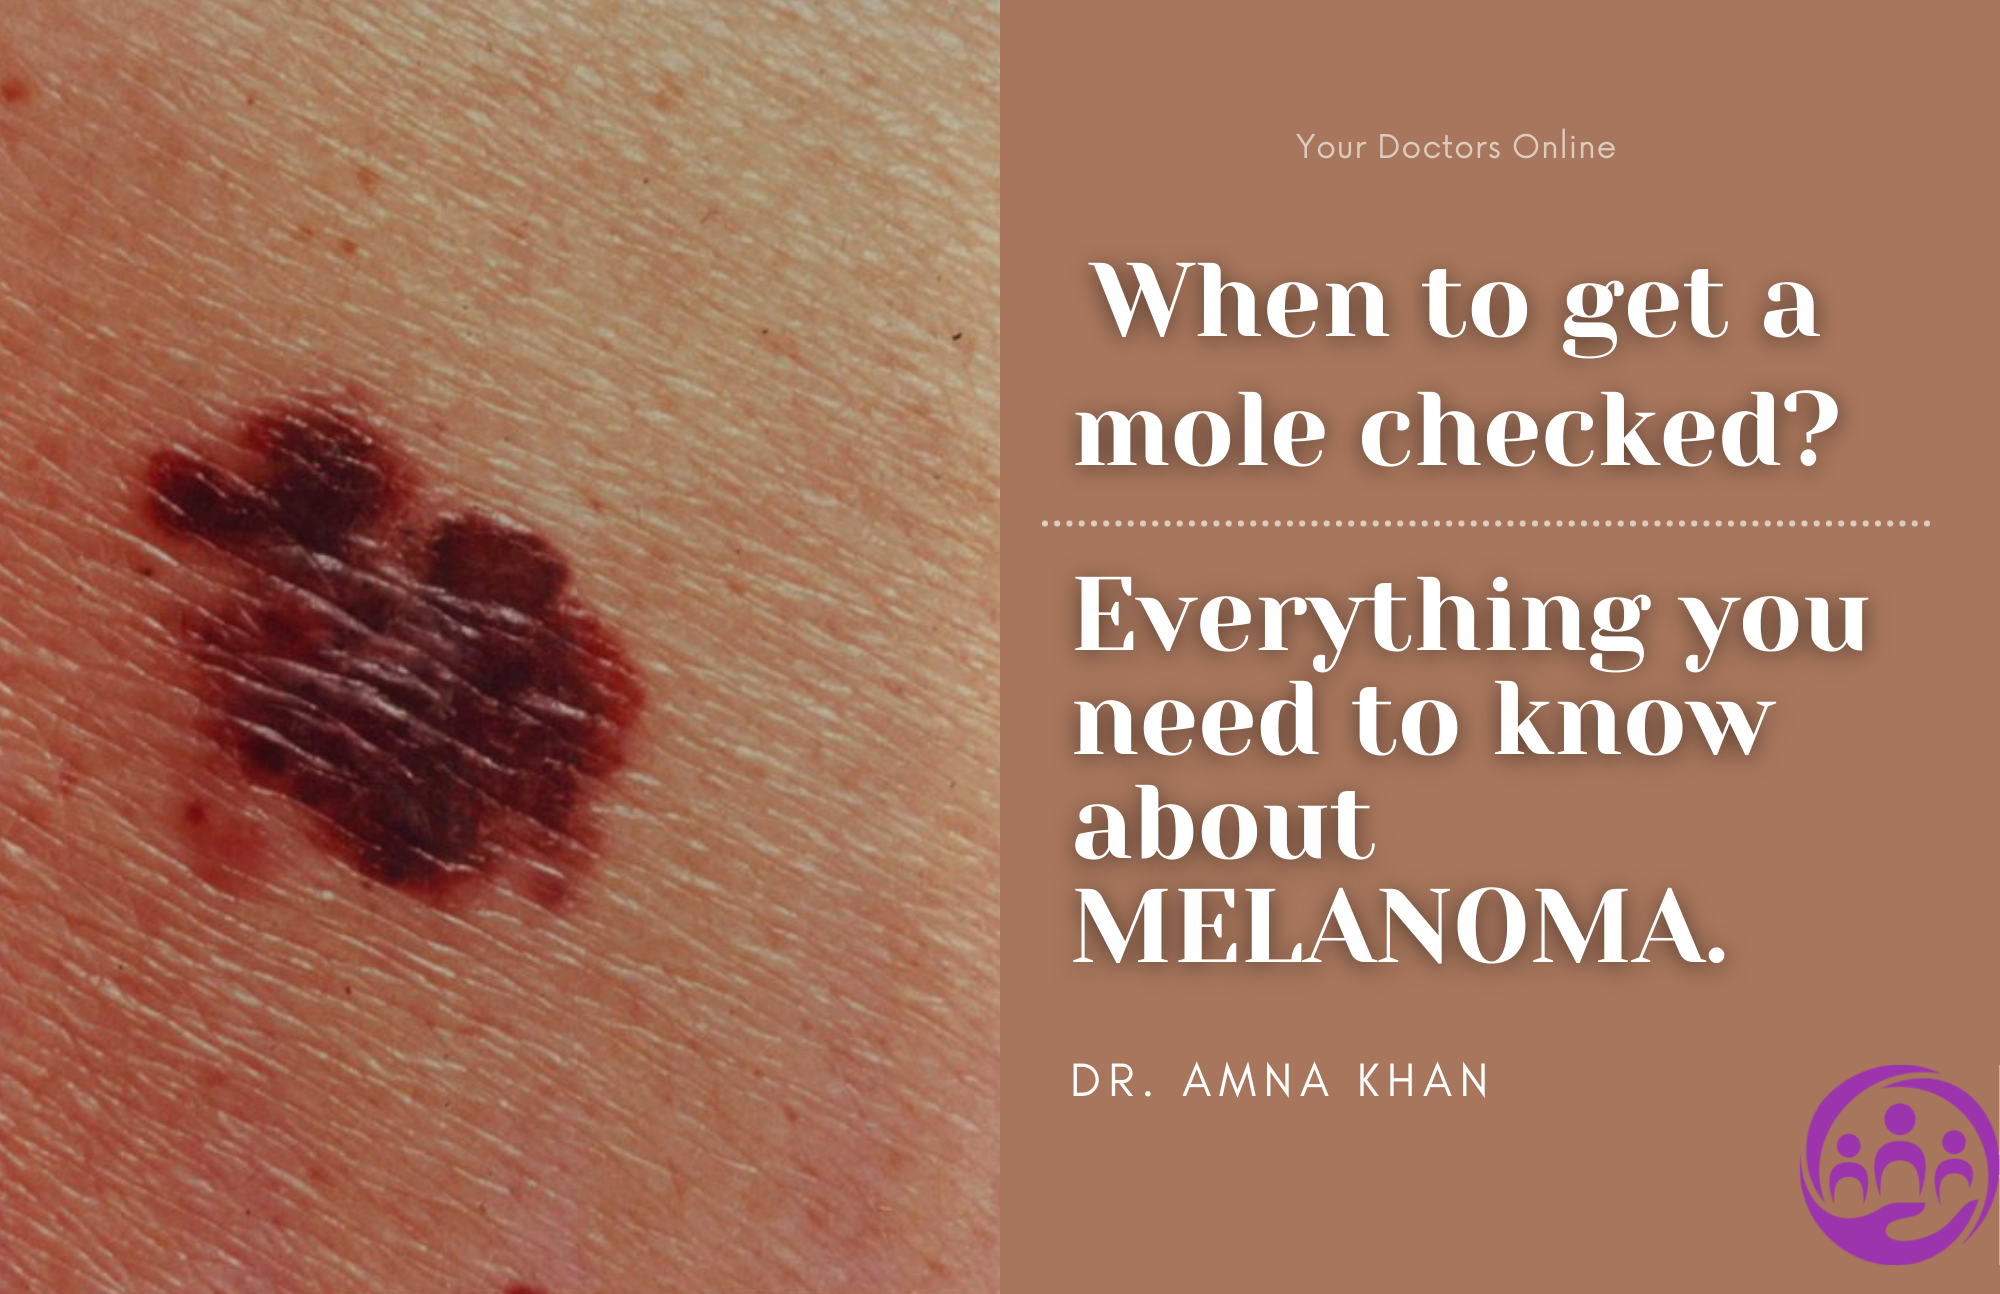 When to get a mole checked? Everything you need to know about Melanoma.